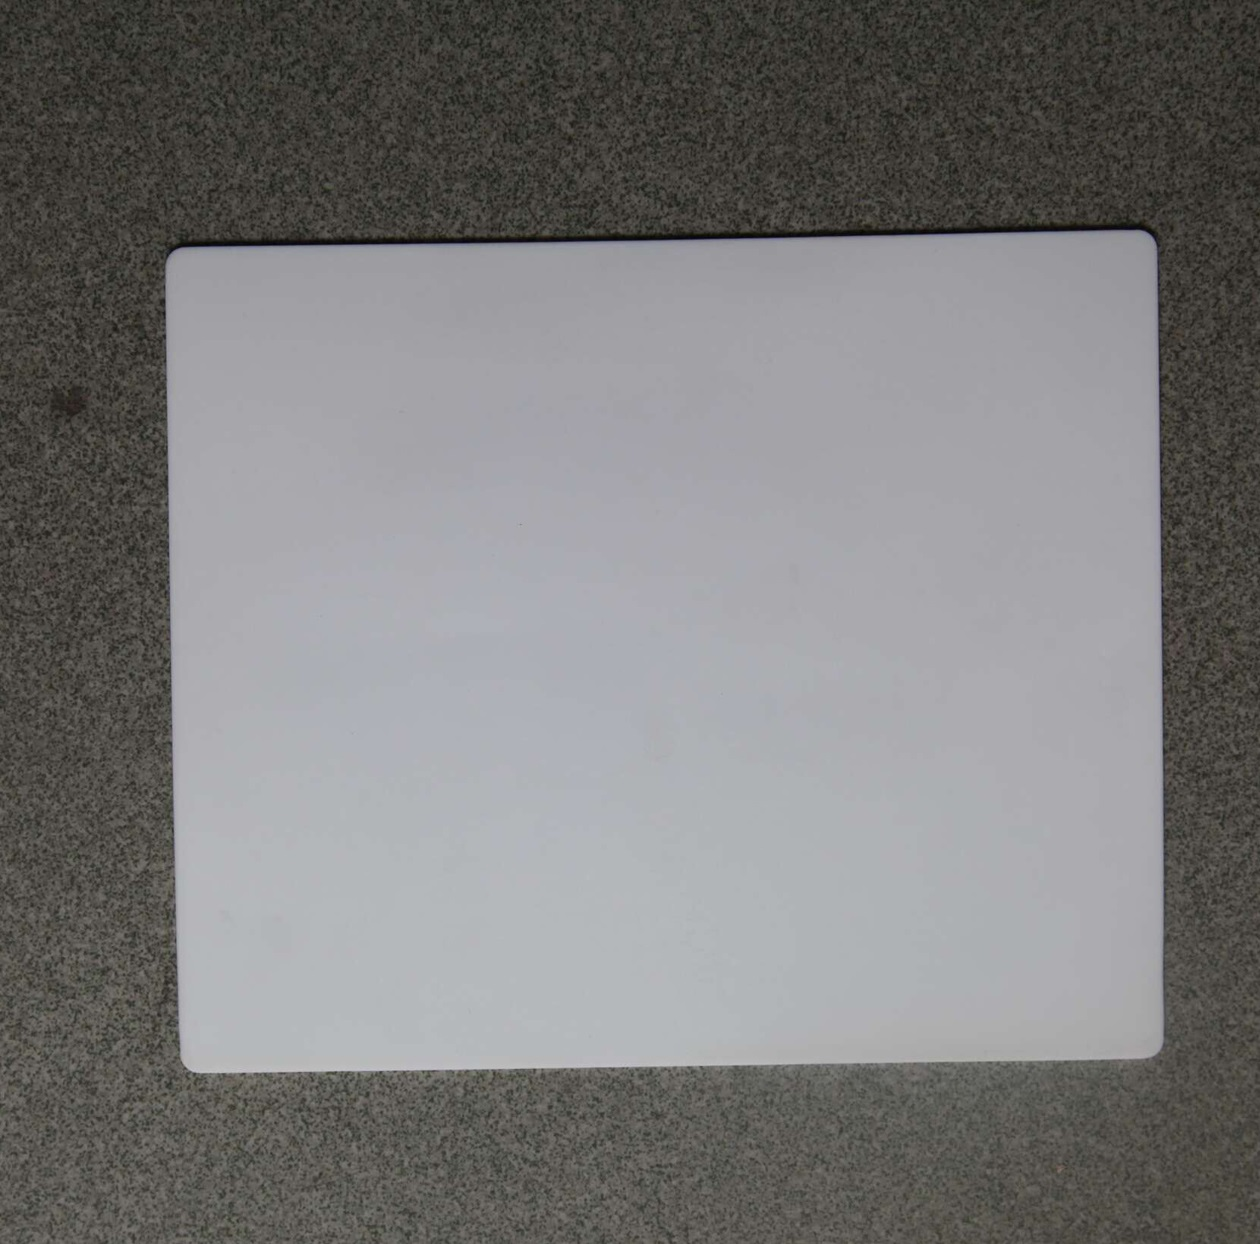 silicone rubber mouse pad, mouse mat with nano antibacterial coating